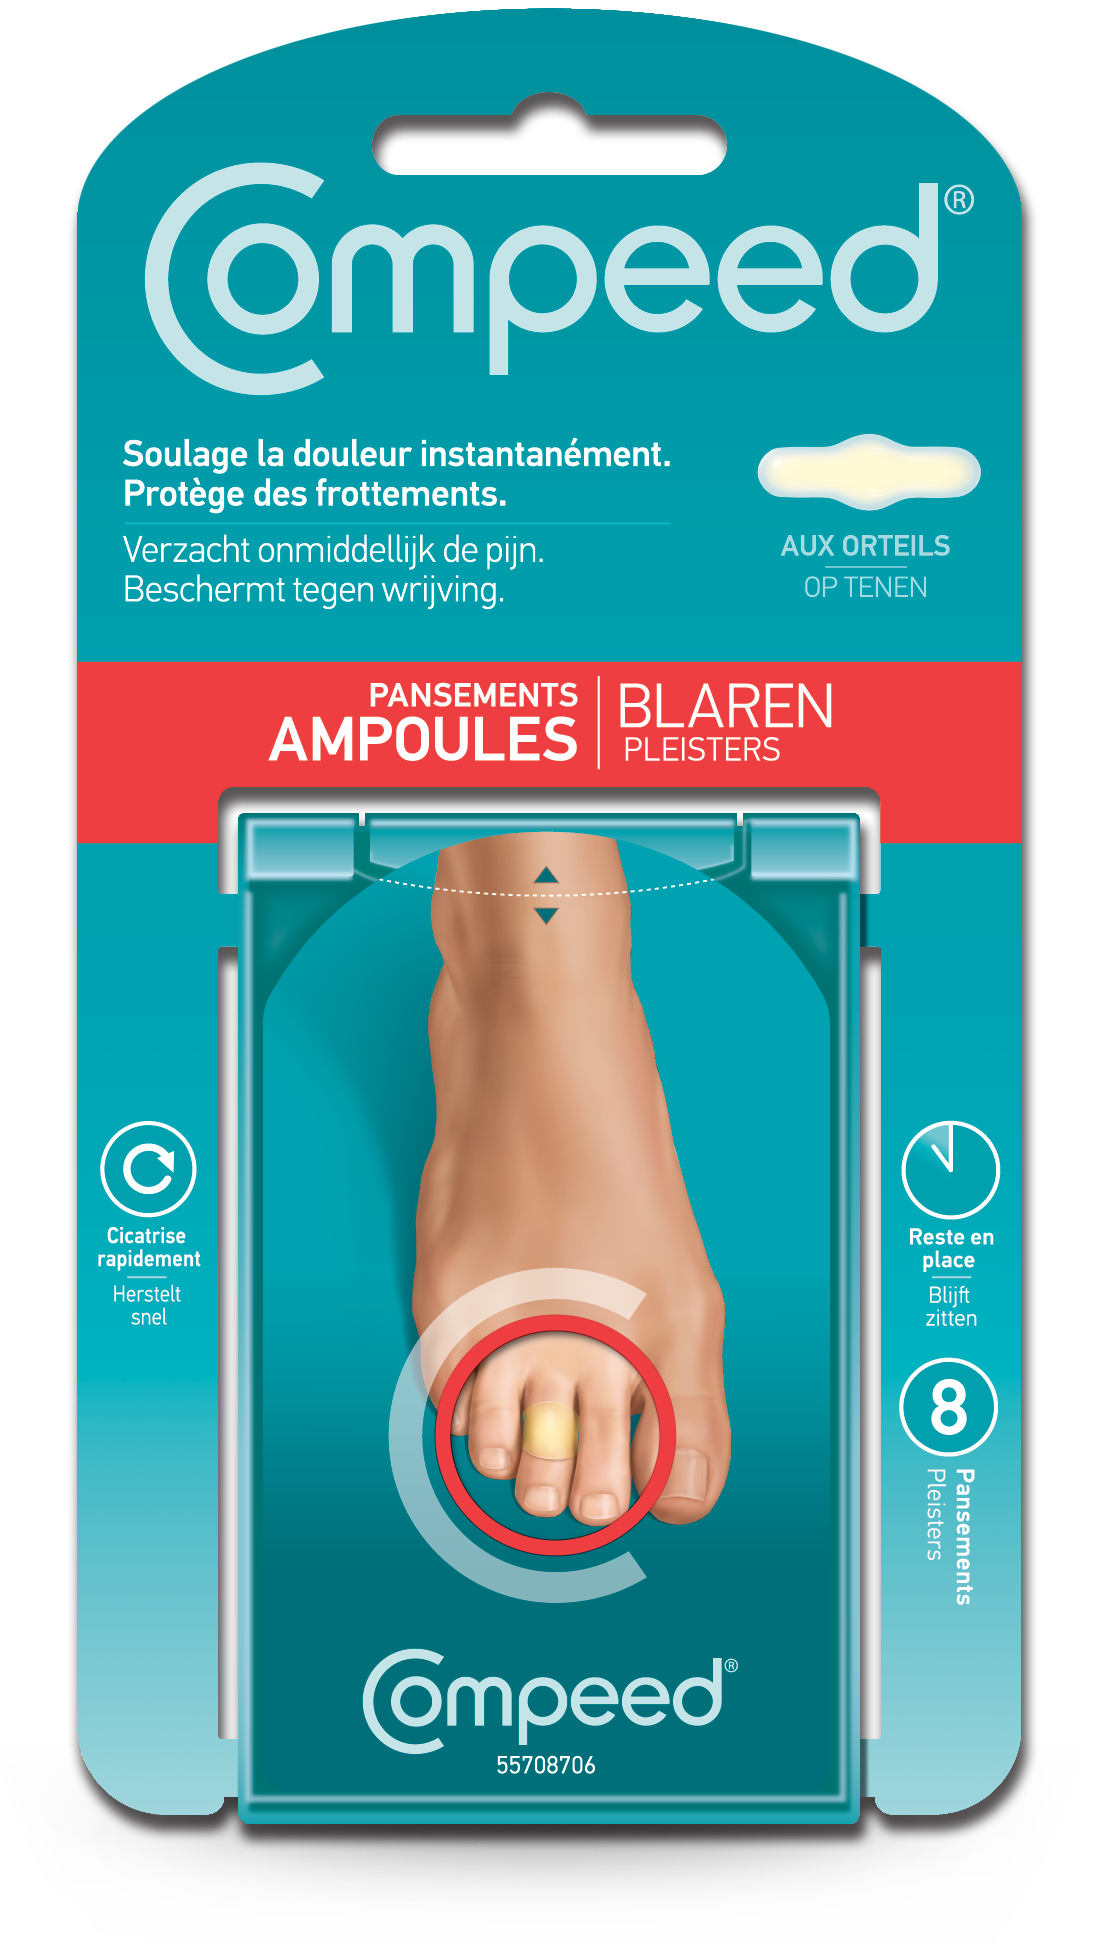 prix de compeed ampoules aux orteils x8 pansements. Black Bedroom Furniture Sets. Home Design Ideas